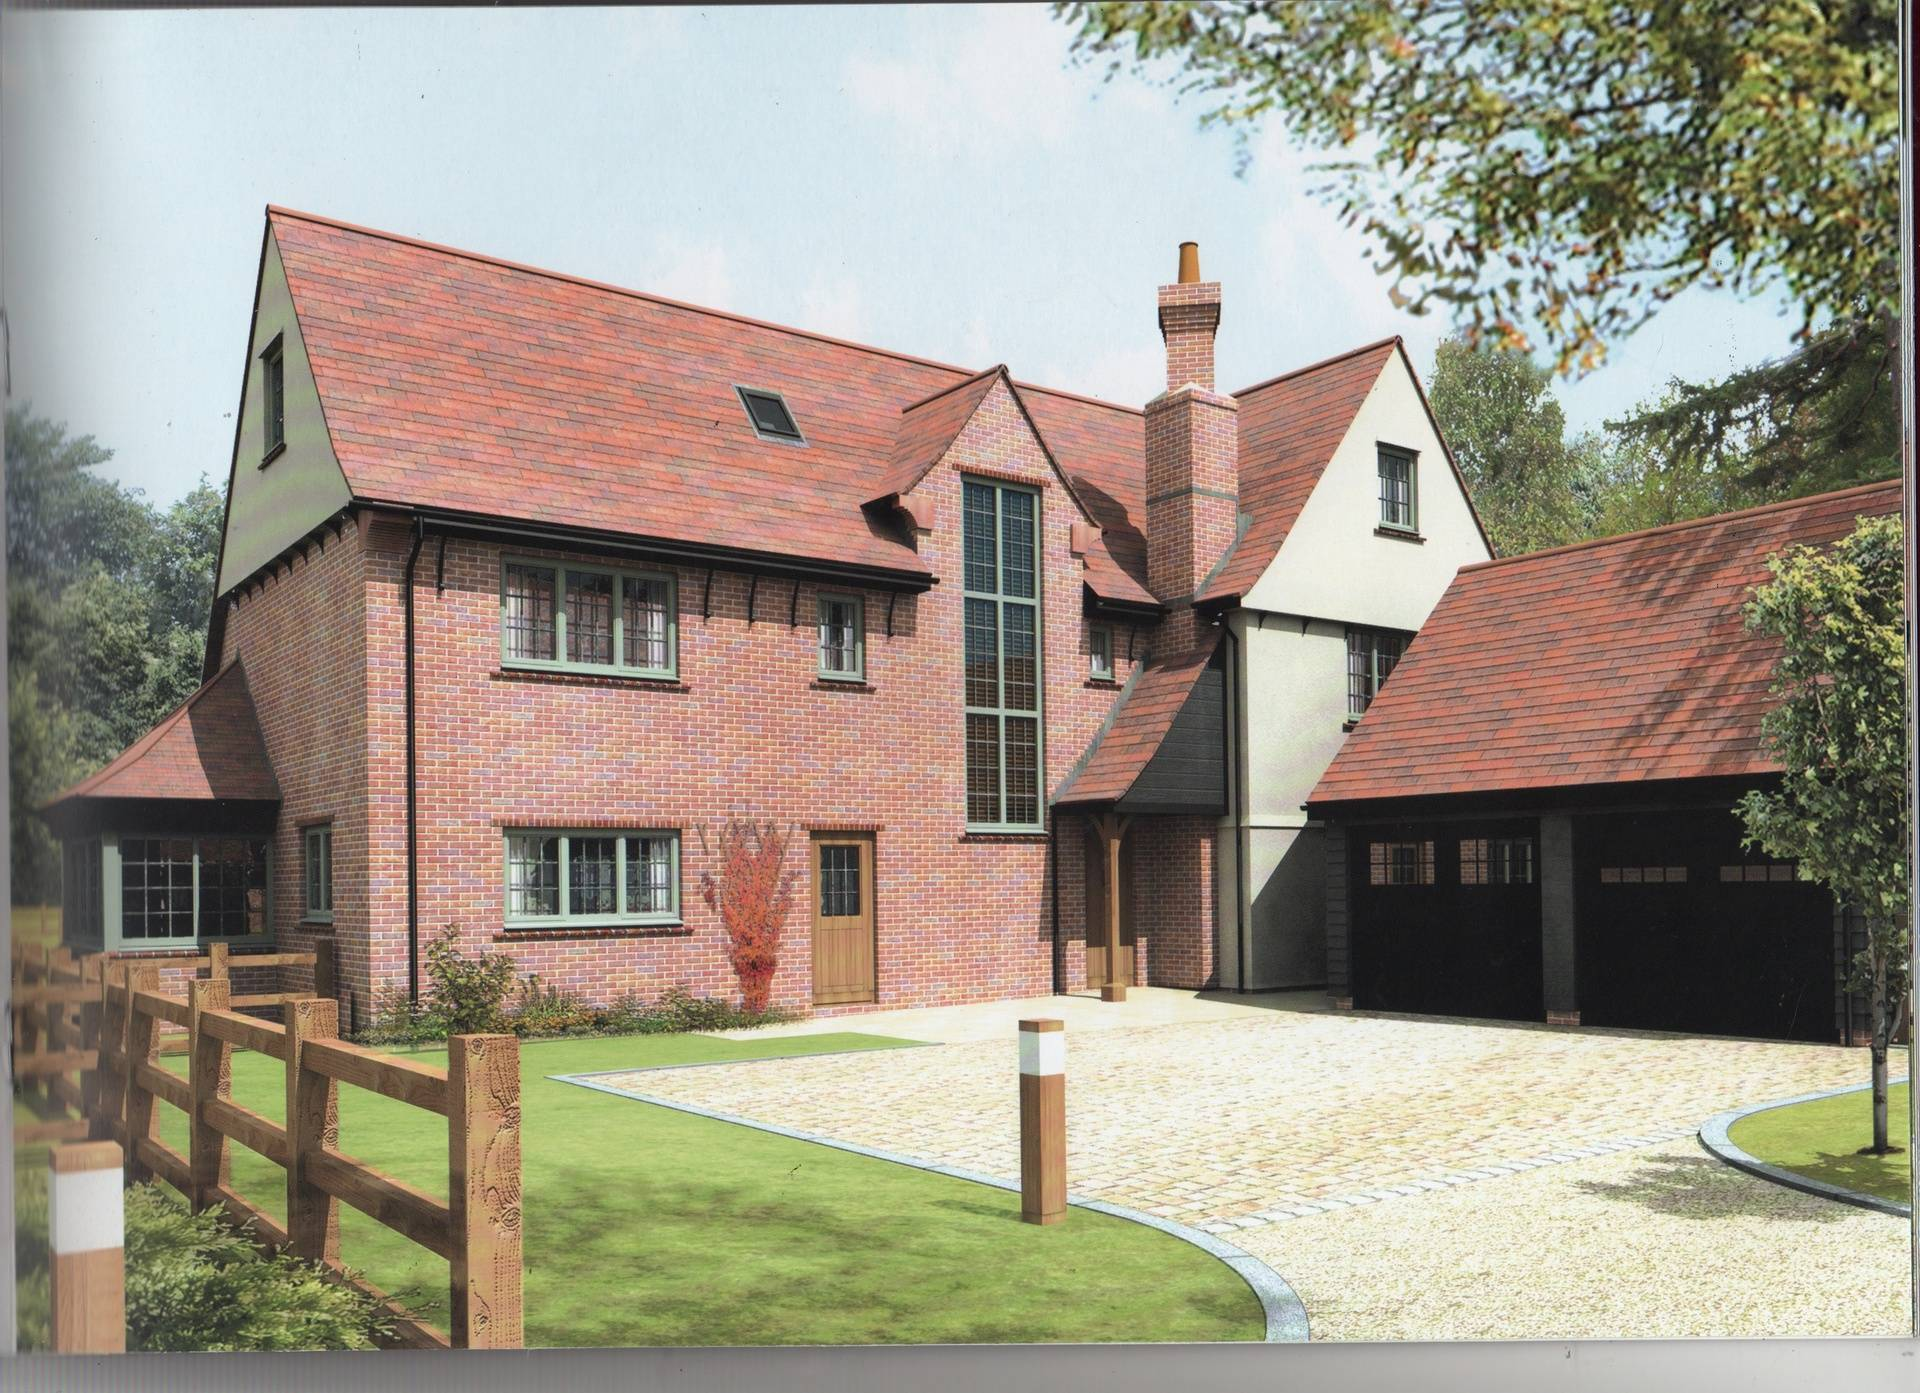 Plot 4 Potters Wood Herts